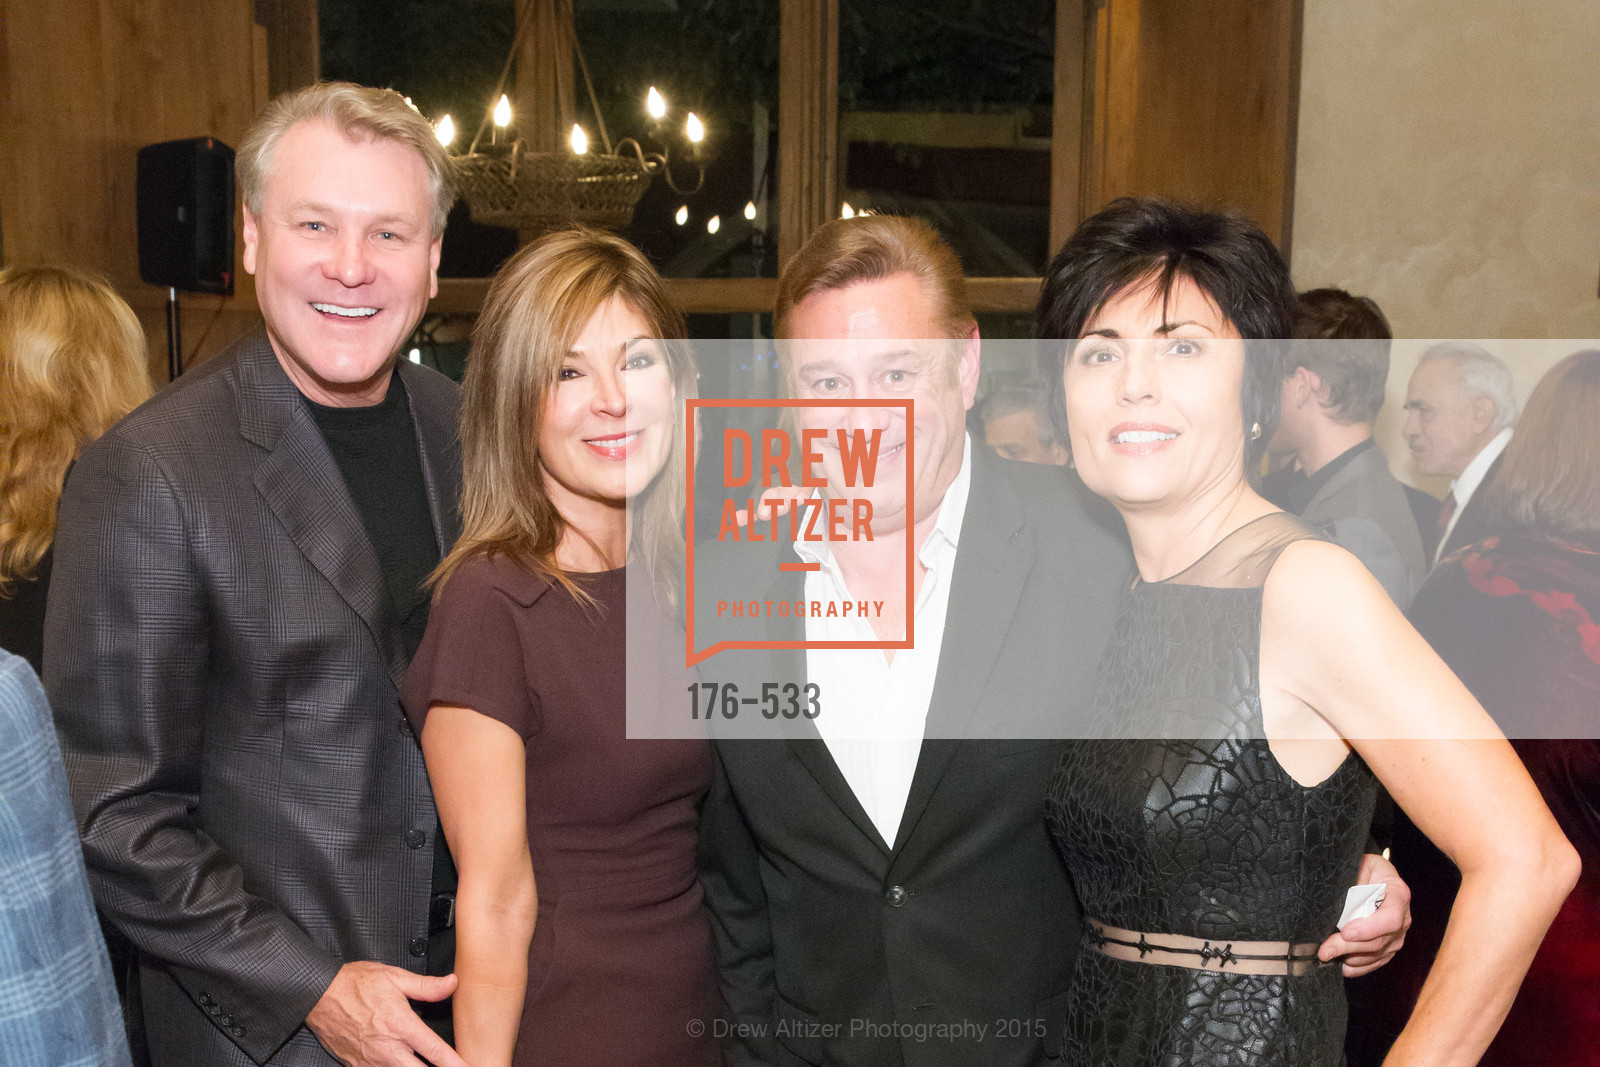 Randy Fry, Vicki Liviakis, Steve Padis, Joan Dauria, Hellenic Charity Ball Cocktail Reception, Kokkari. 200 Jackson St, San Francisco, CA 94111, November 13th, 2015,Drew Altizer, Drew Altizer Photography, full-service agency, private events, San Francisco photographer, photographer california